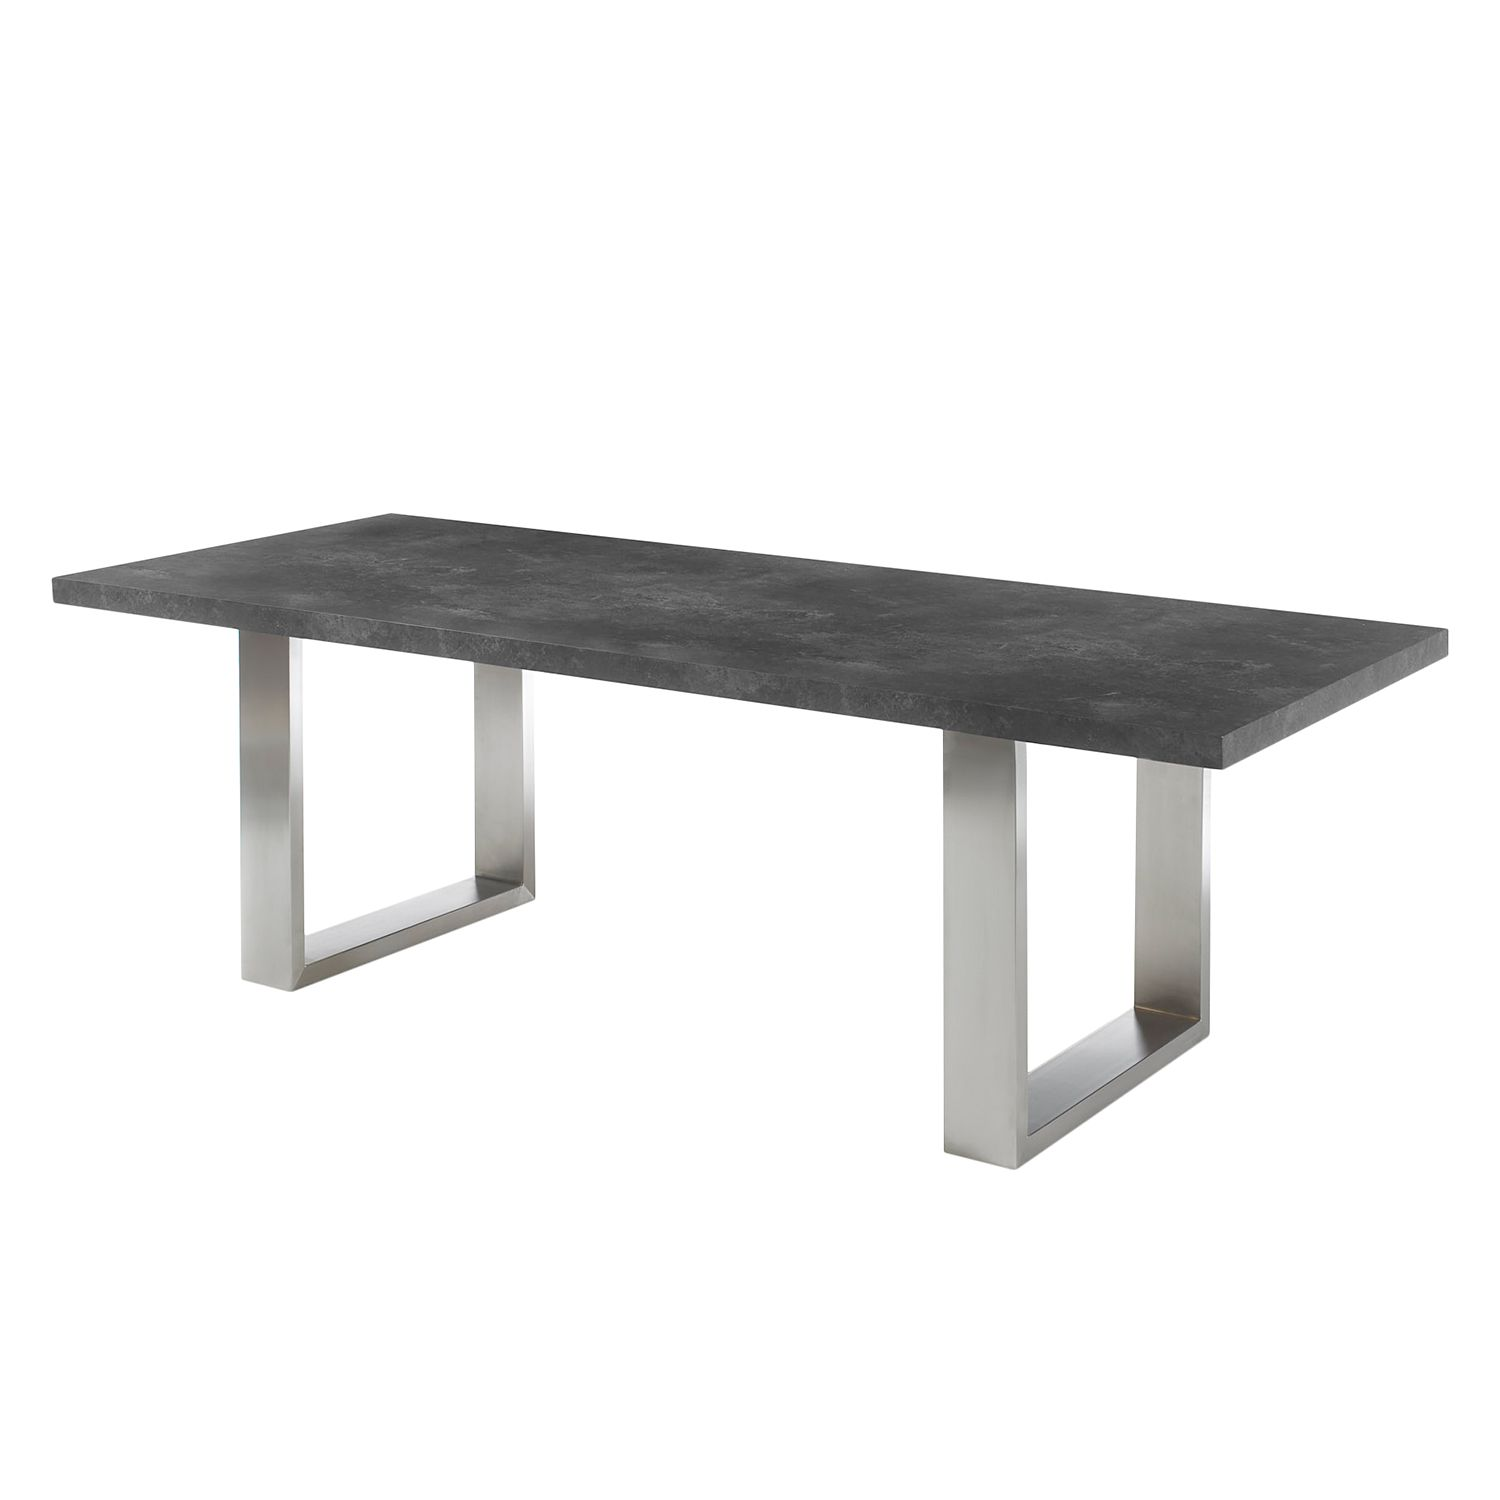 Table à manger Boonton - Anthracite - 220 x 100 cm, Fredriks